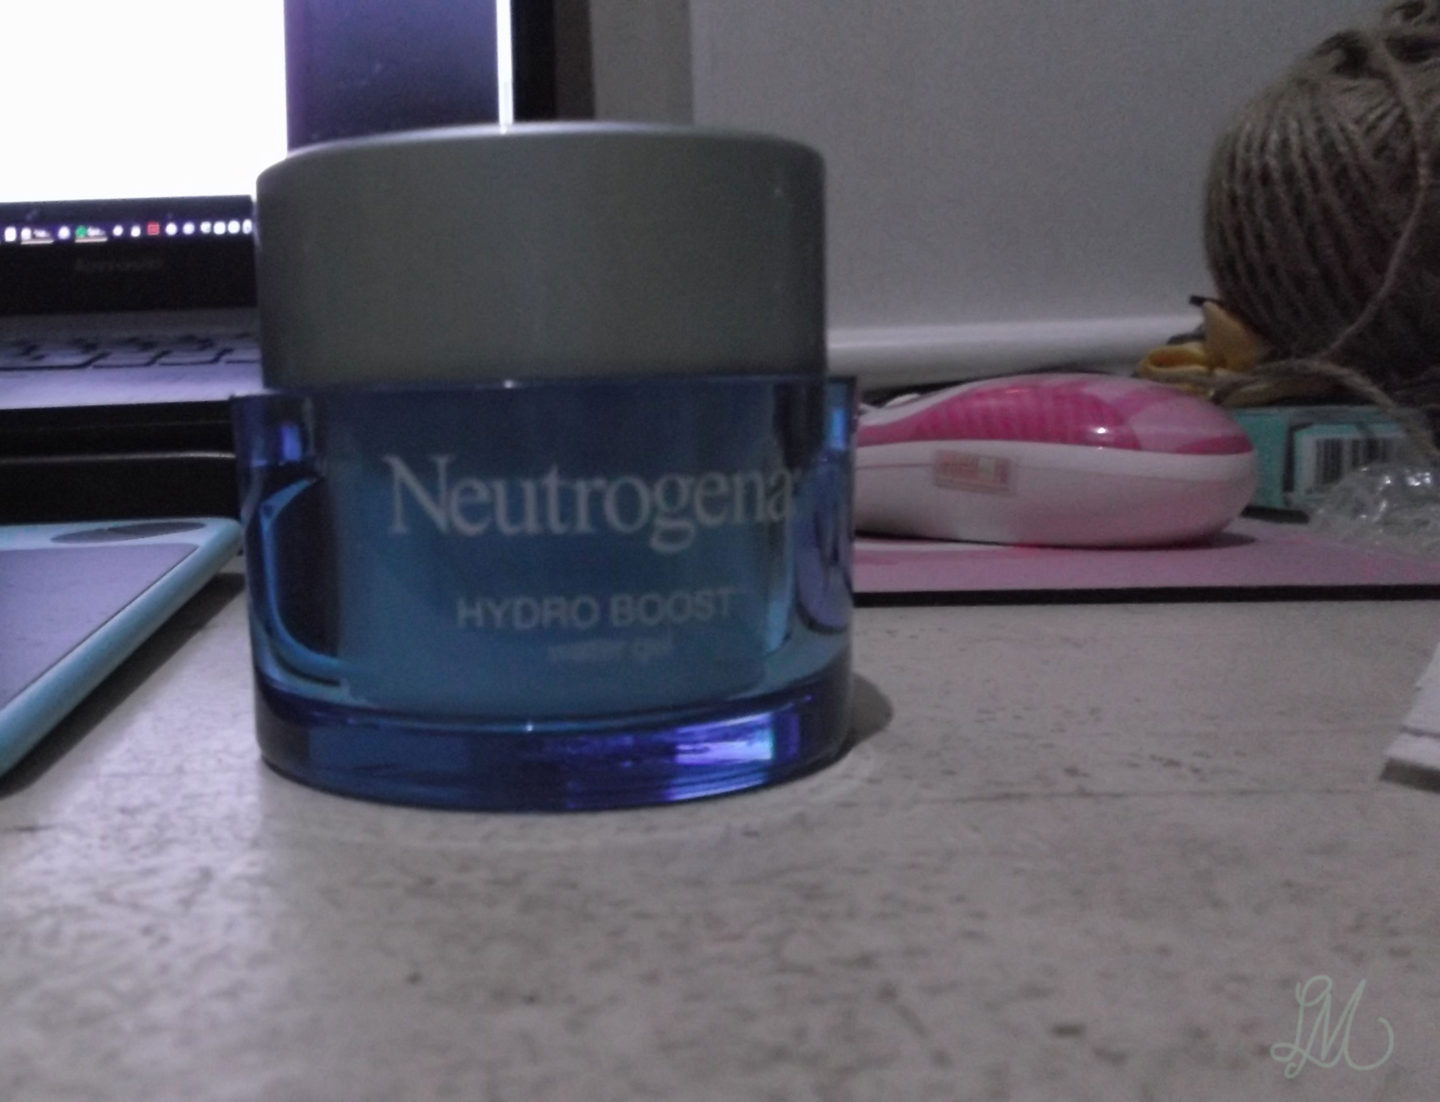 Light as a feather, pure as water: A Neutrogena Hydro Boost Water Gel product review